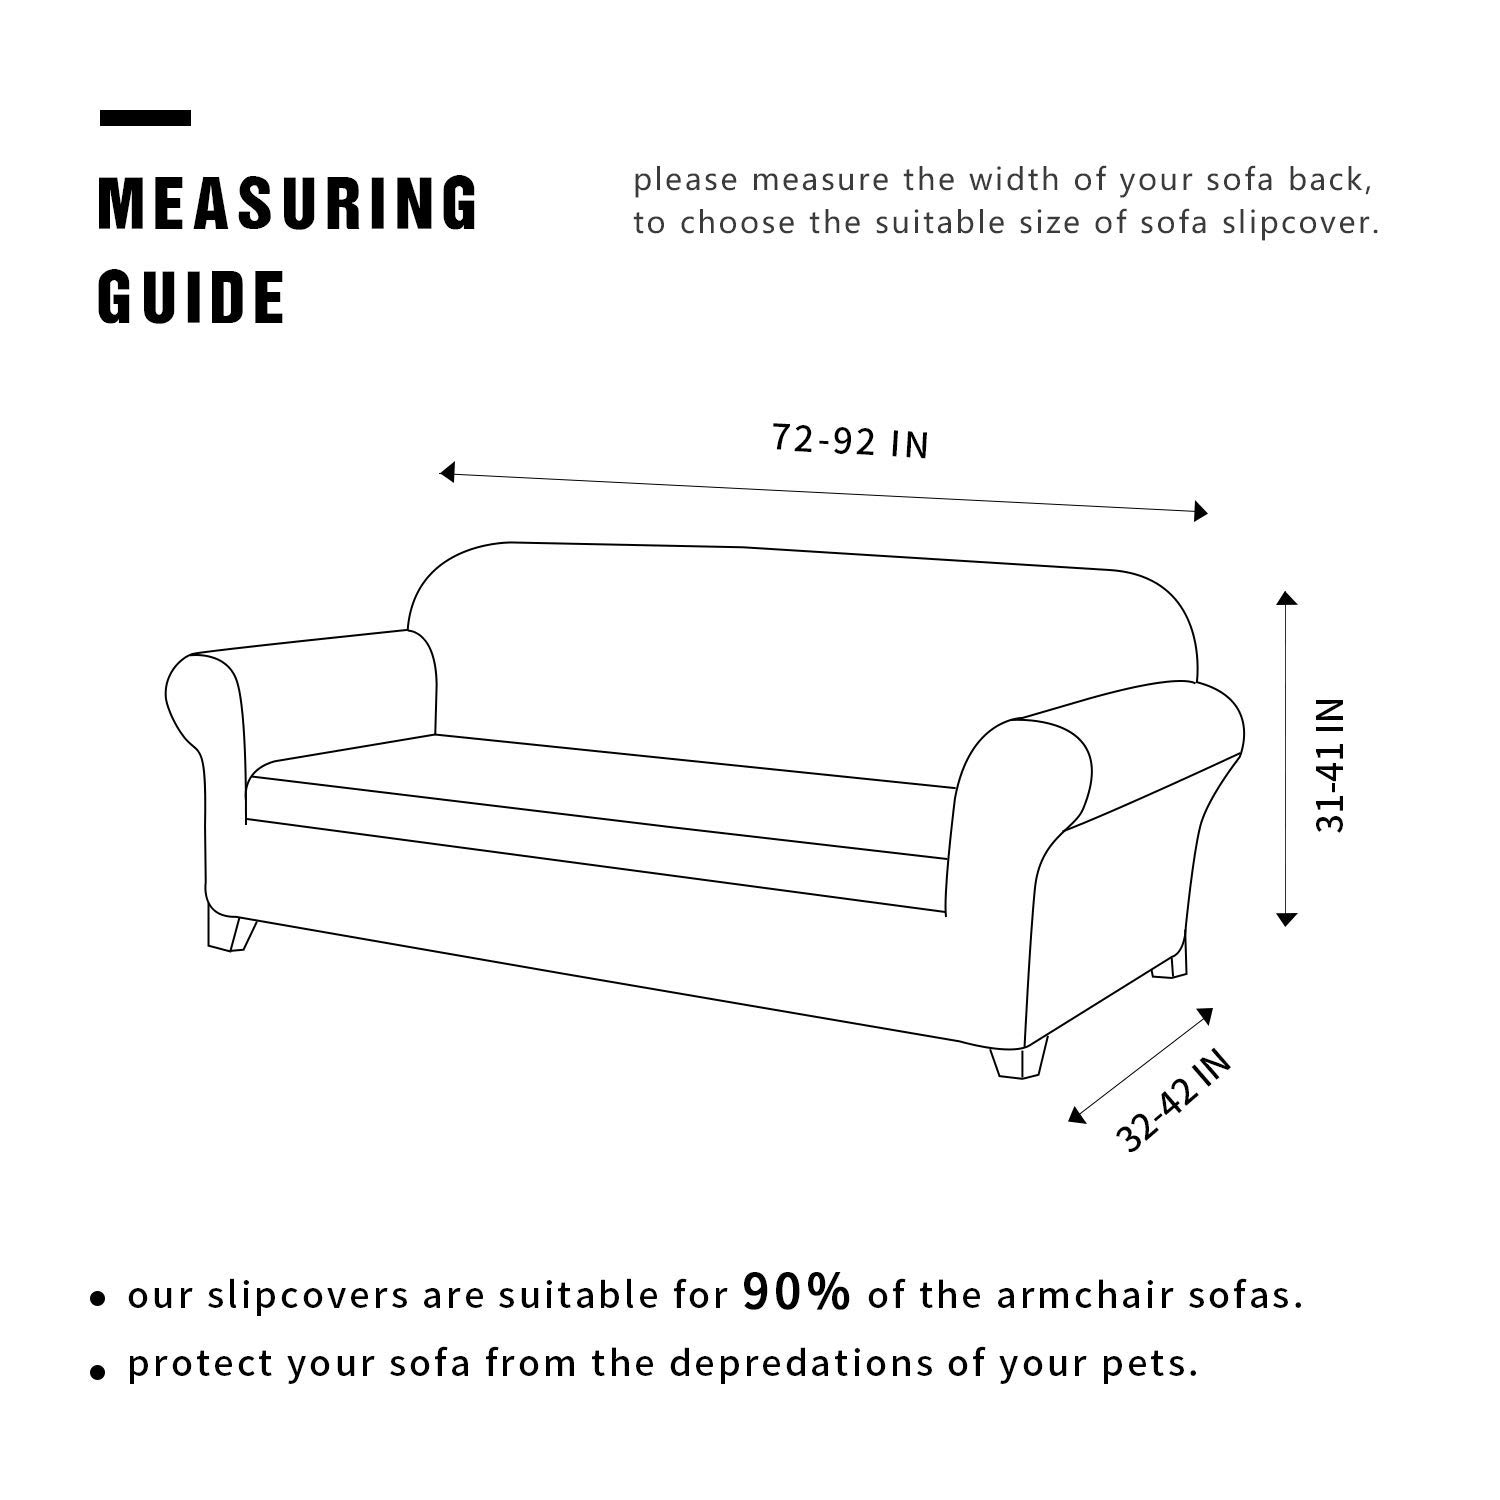 TOYABR 2-Piece/Seersucker Jacquard/Stretchy/Fabric/Dinning Room Sofa/Slipcovers/Fitted/Sofa/Protector Loveseat, Cream Ivory